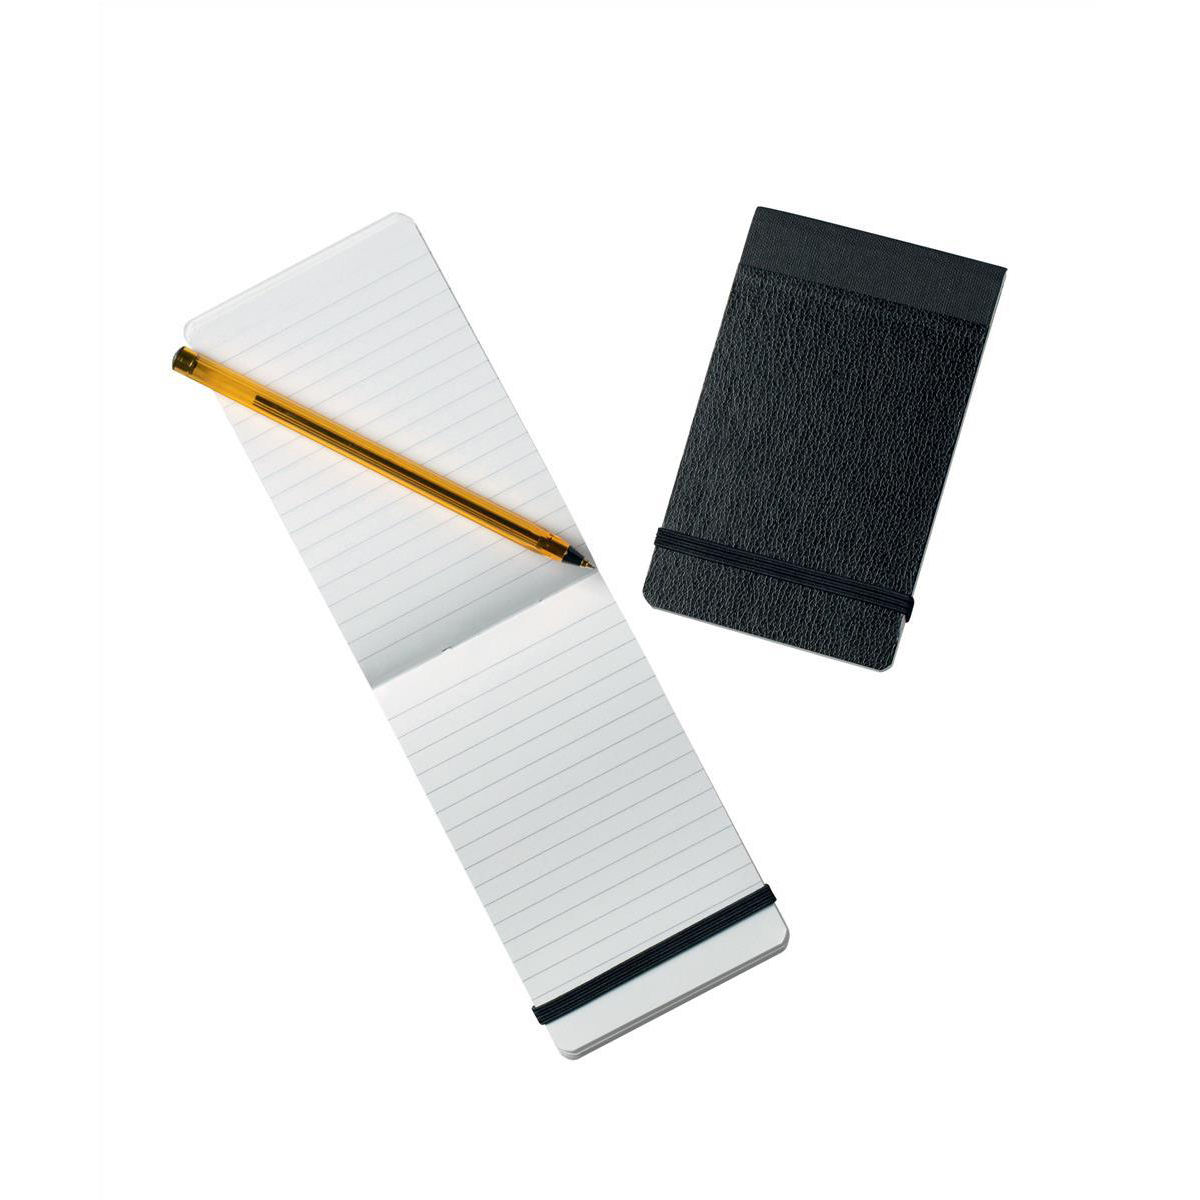 Silvine Elasticated Pocket Notebook 75gsm Ruled 160pp 78x127mm Black Ref 190 [Pack 12]